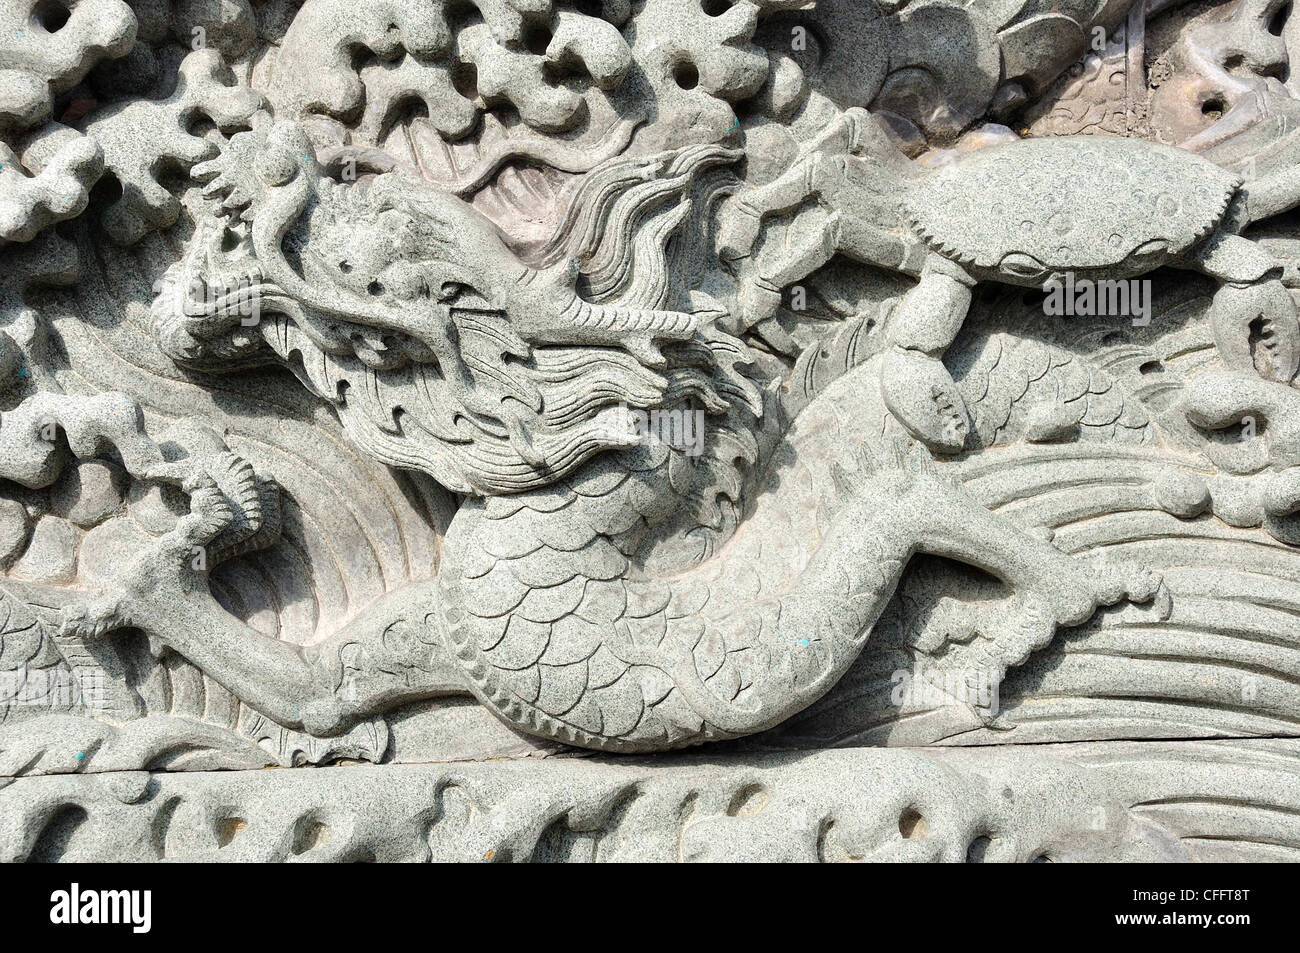 Typical Chinese carven dragon on wall expressing power and status in ancient thailand - Stock Image